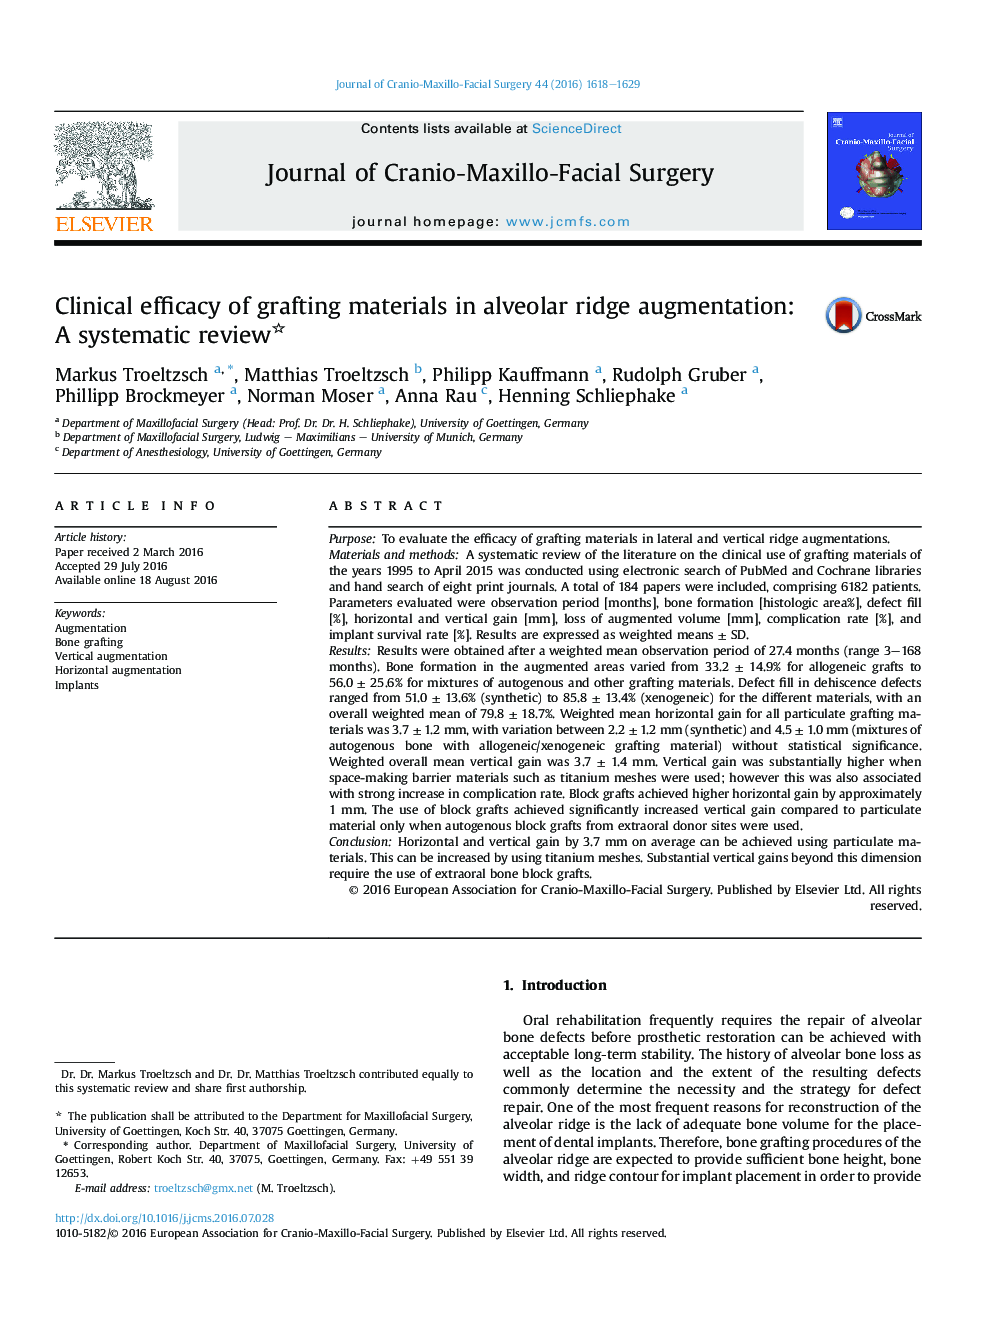 Clinical efficacy of grafting materials in alveolar ridge augmentation: A systematic review